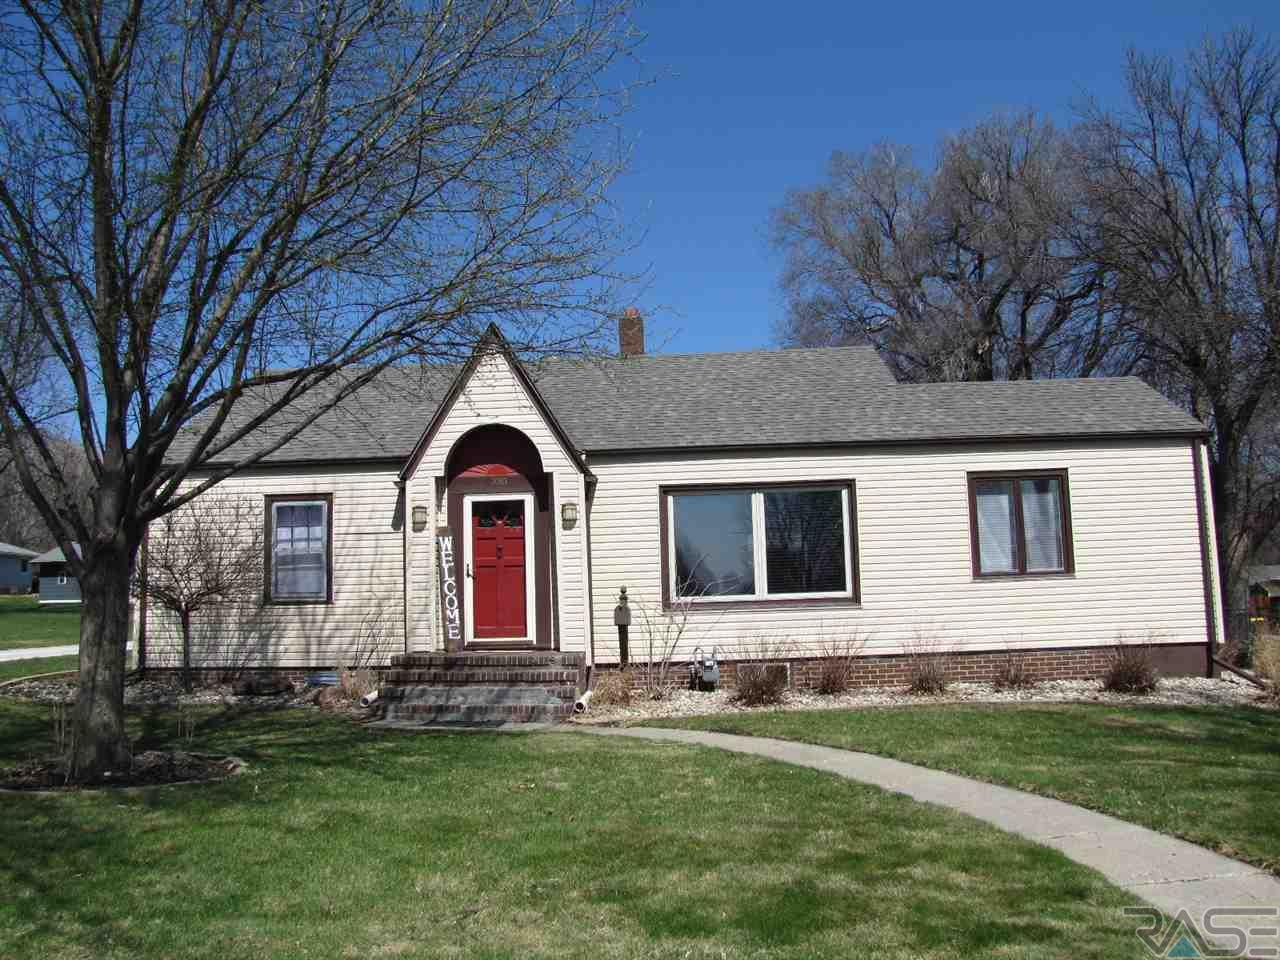 100 W Barck Ave, Luverne, MN 56156